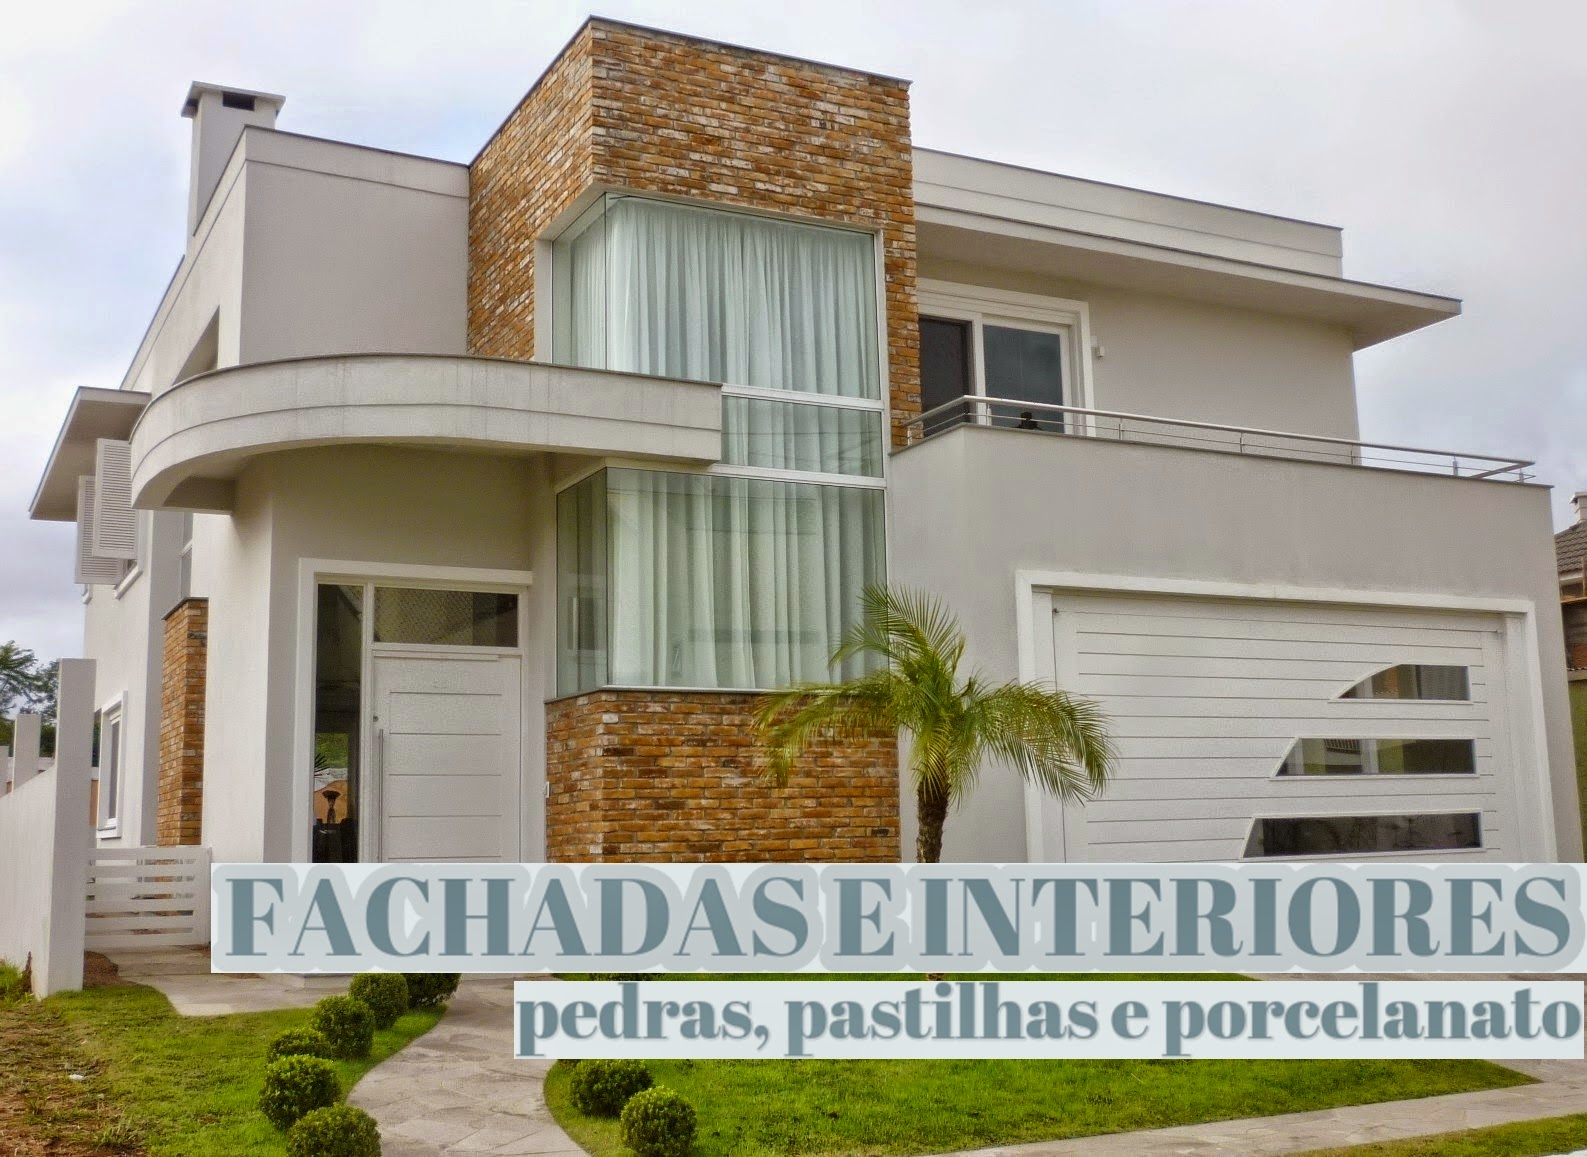 Construindo minha casa clean pedras decorativas for Casas decorativas interiores